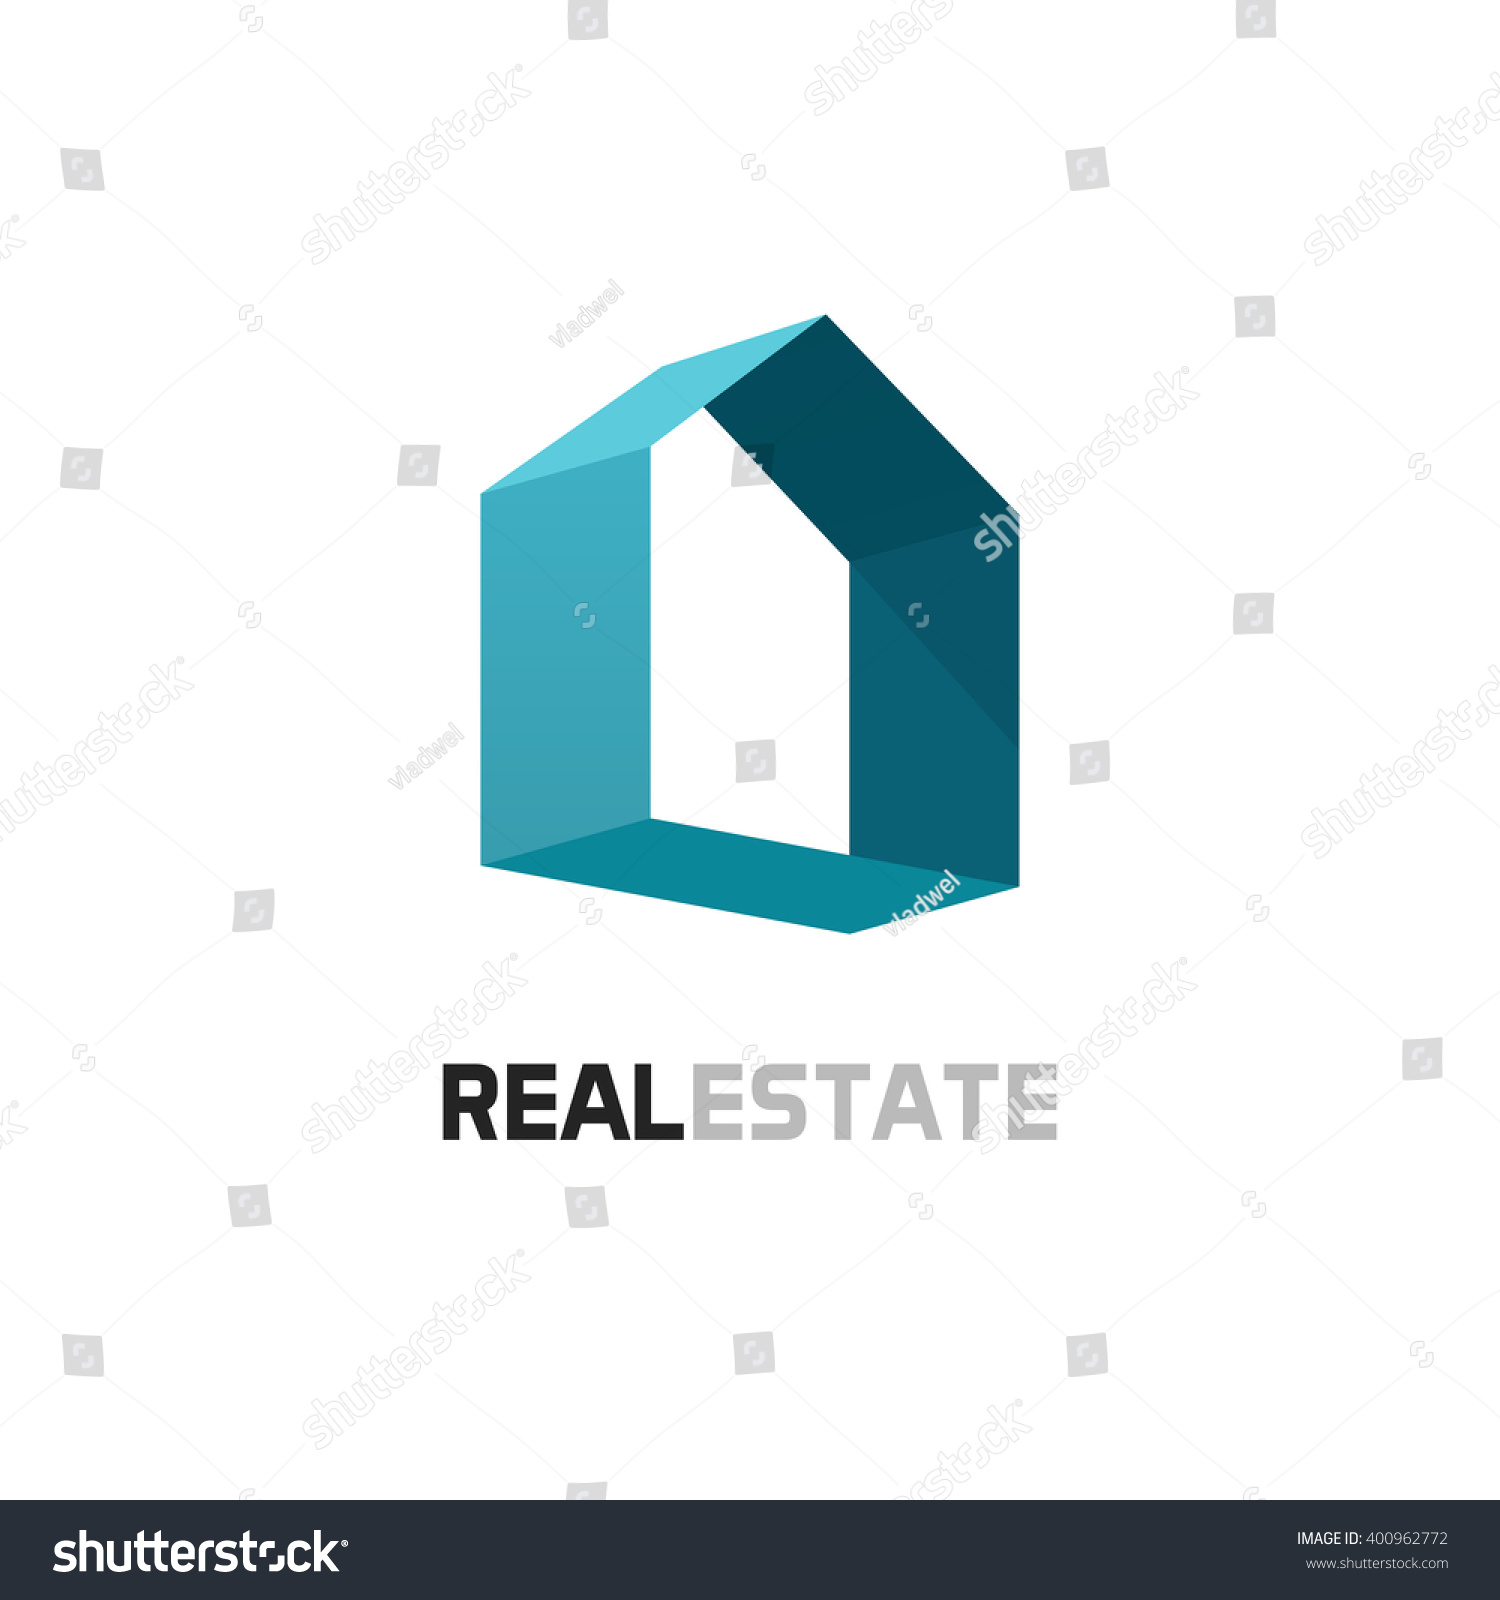 real estate logo template blue 3d abstract geometric home symbol with shadow house shape abstract 3d office building